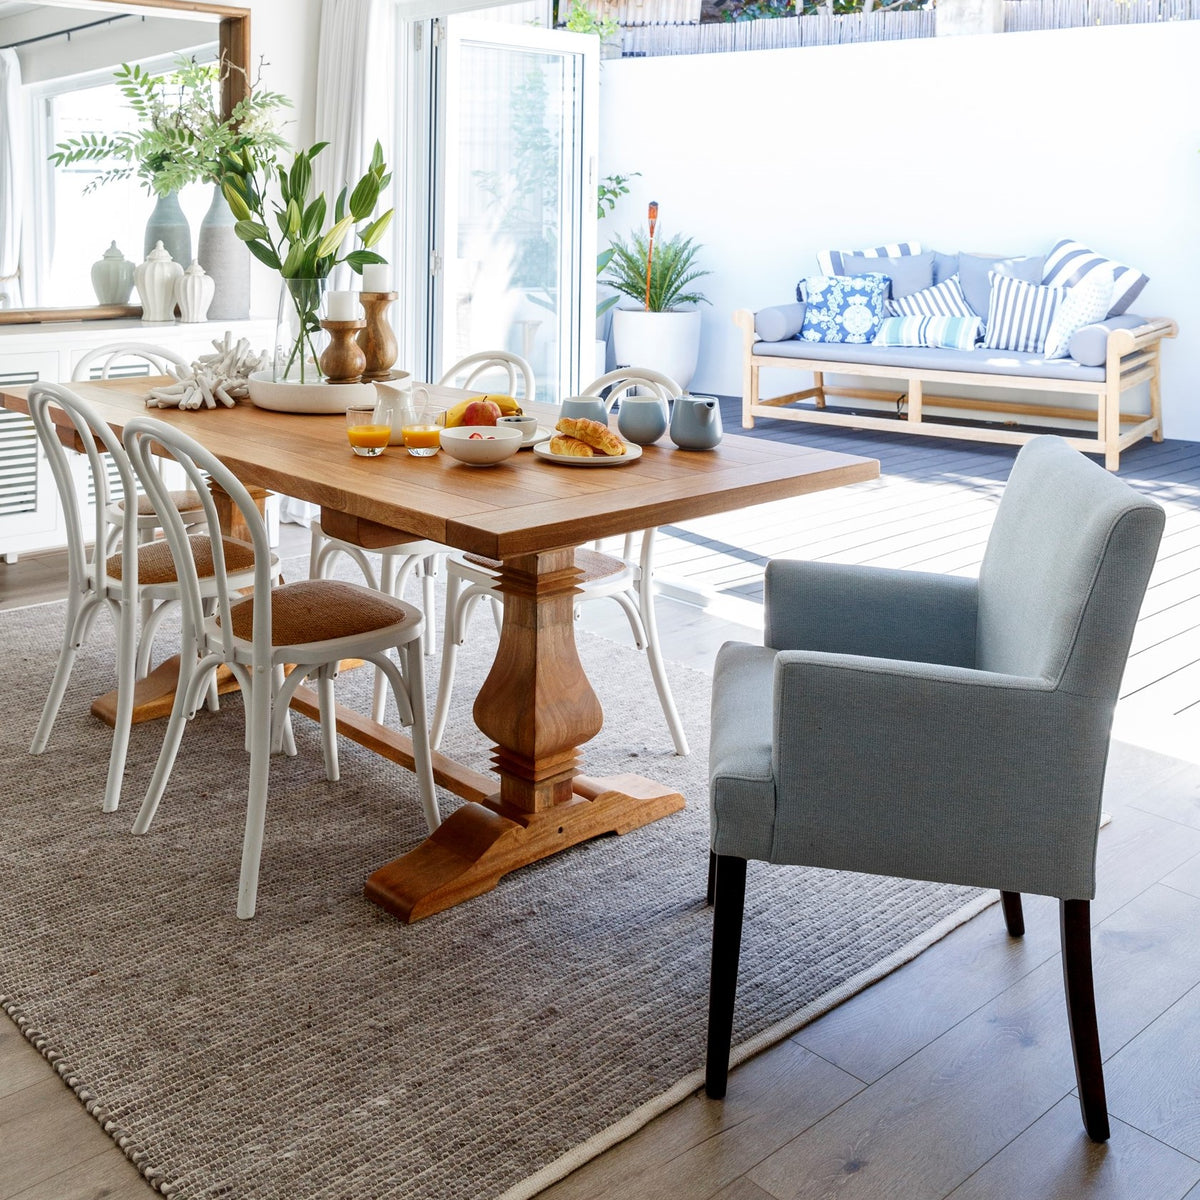 Dining Room Tables Perth: Hamptons Style Dining Room Furniture